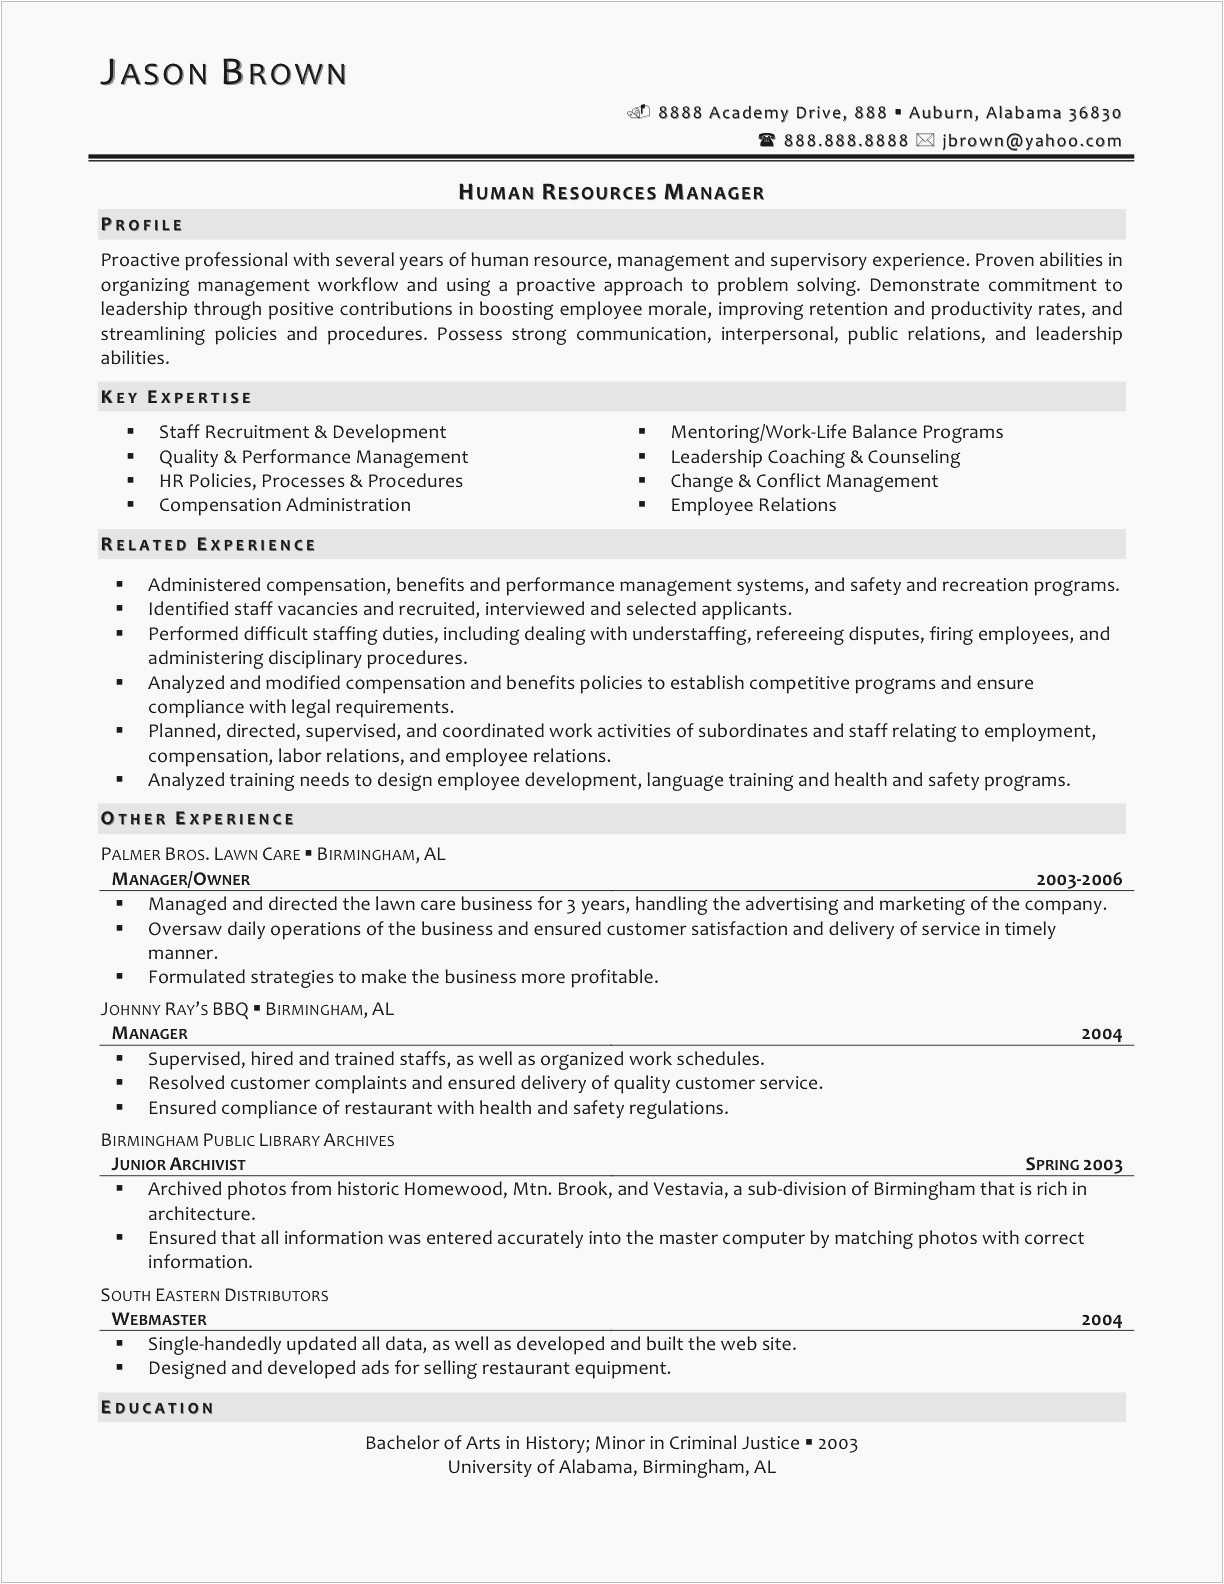 auburn resume template Collection-New Sample Resume for Human Resources Manager Awesome Sample Hr Resume Inspirational Hr Resume Examples Unique 8-n